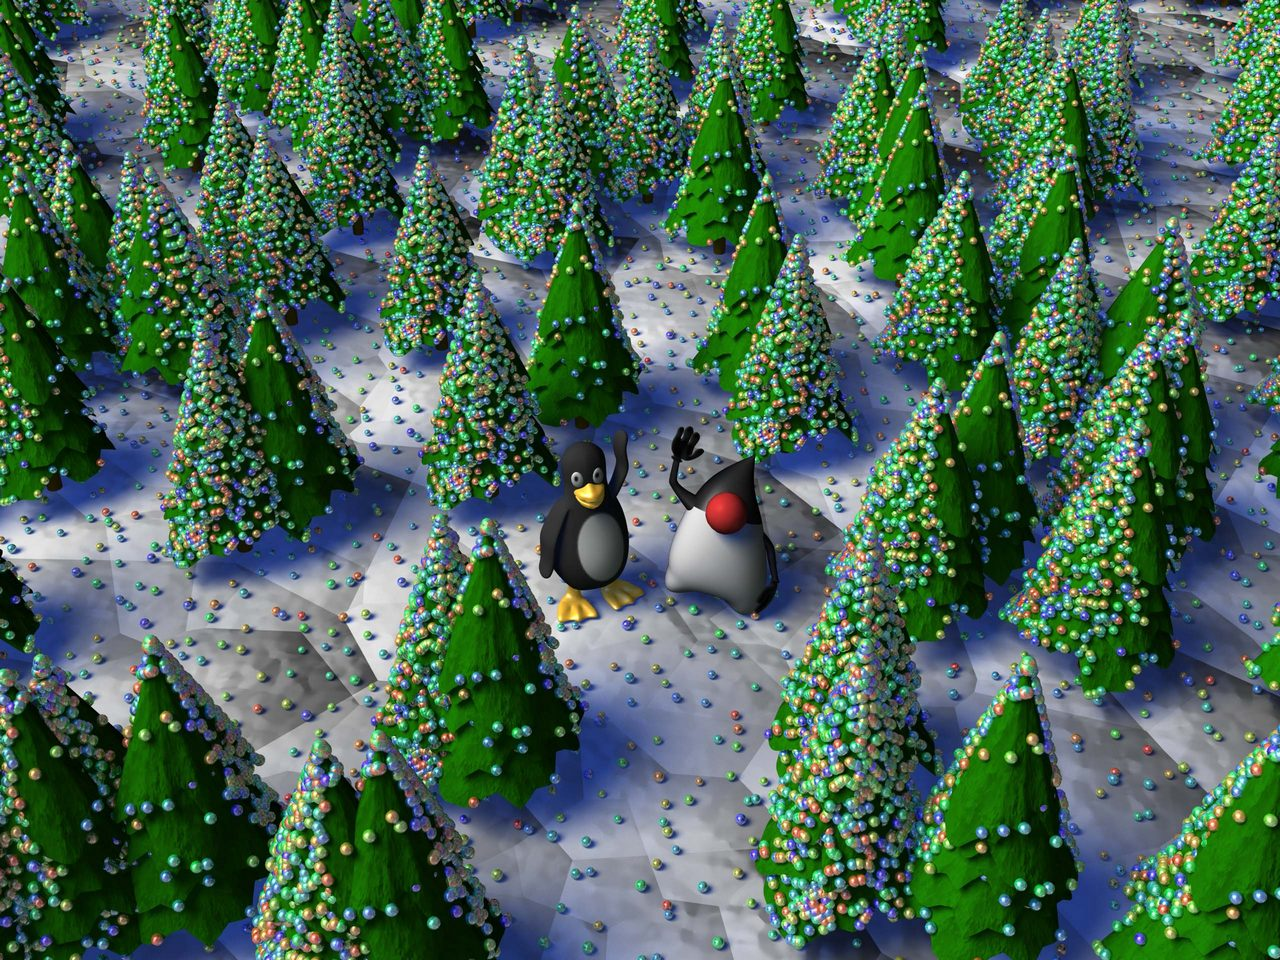 christmas poems, christmas backgrounds, myspace christmas layouts, animated christmas